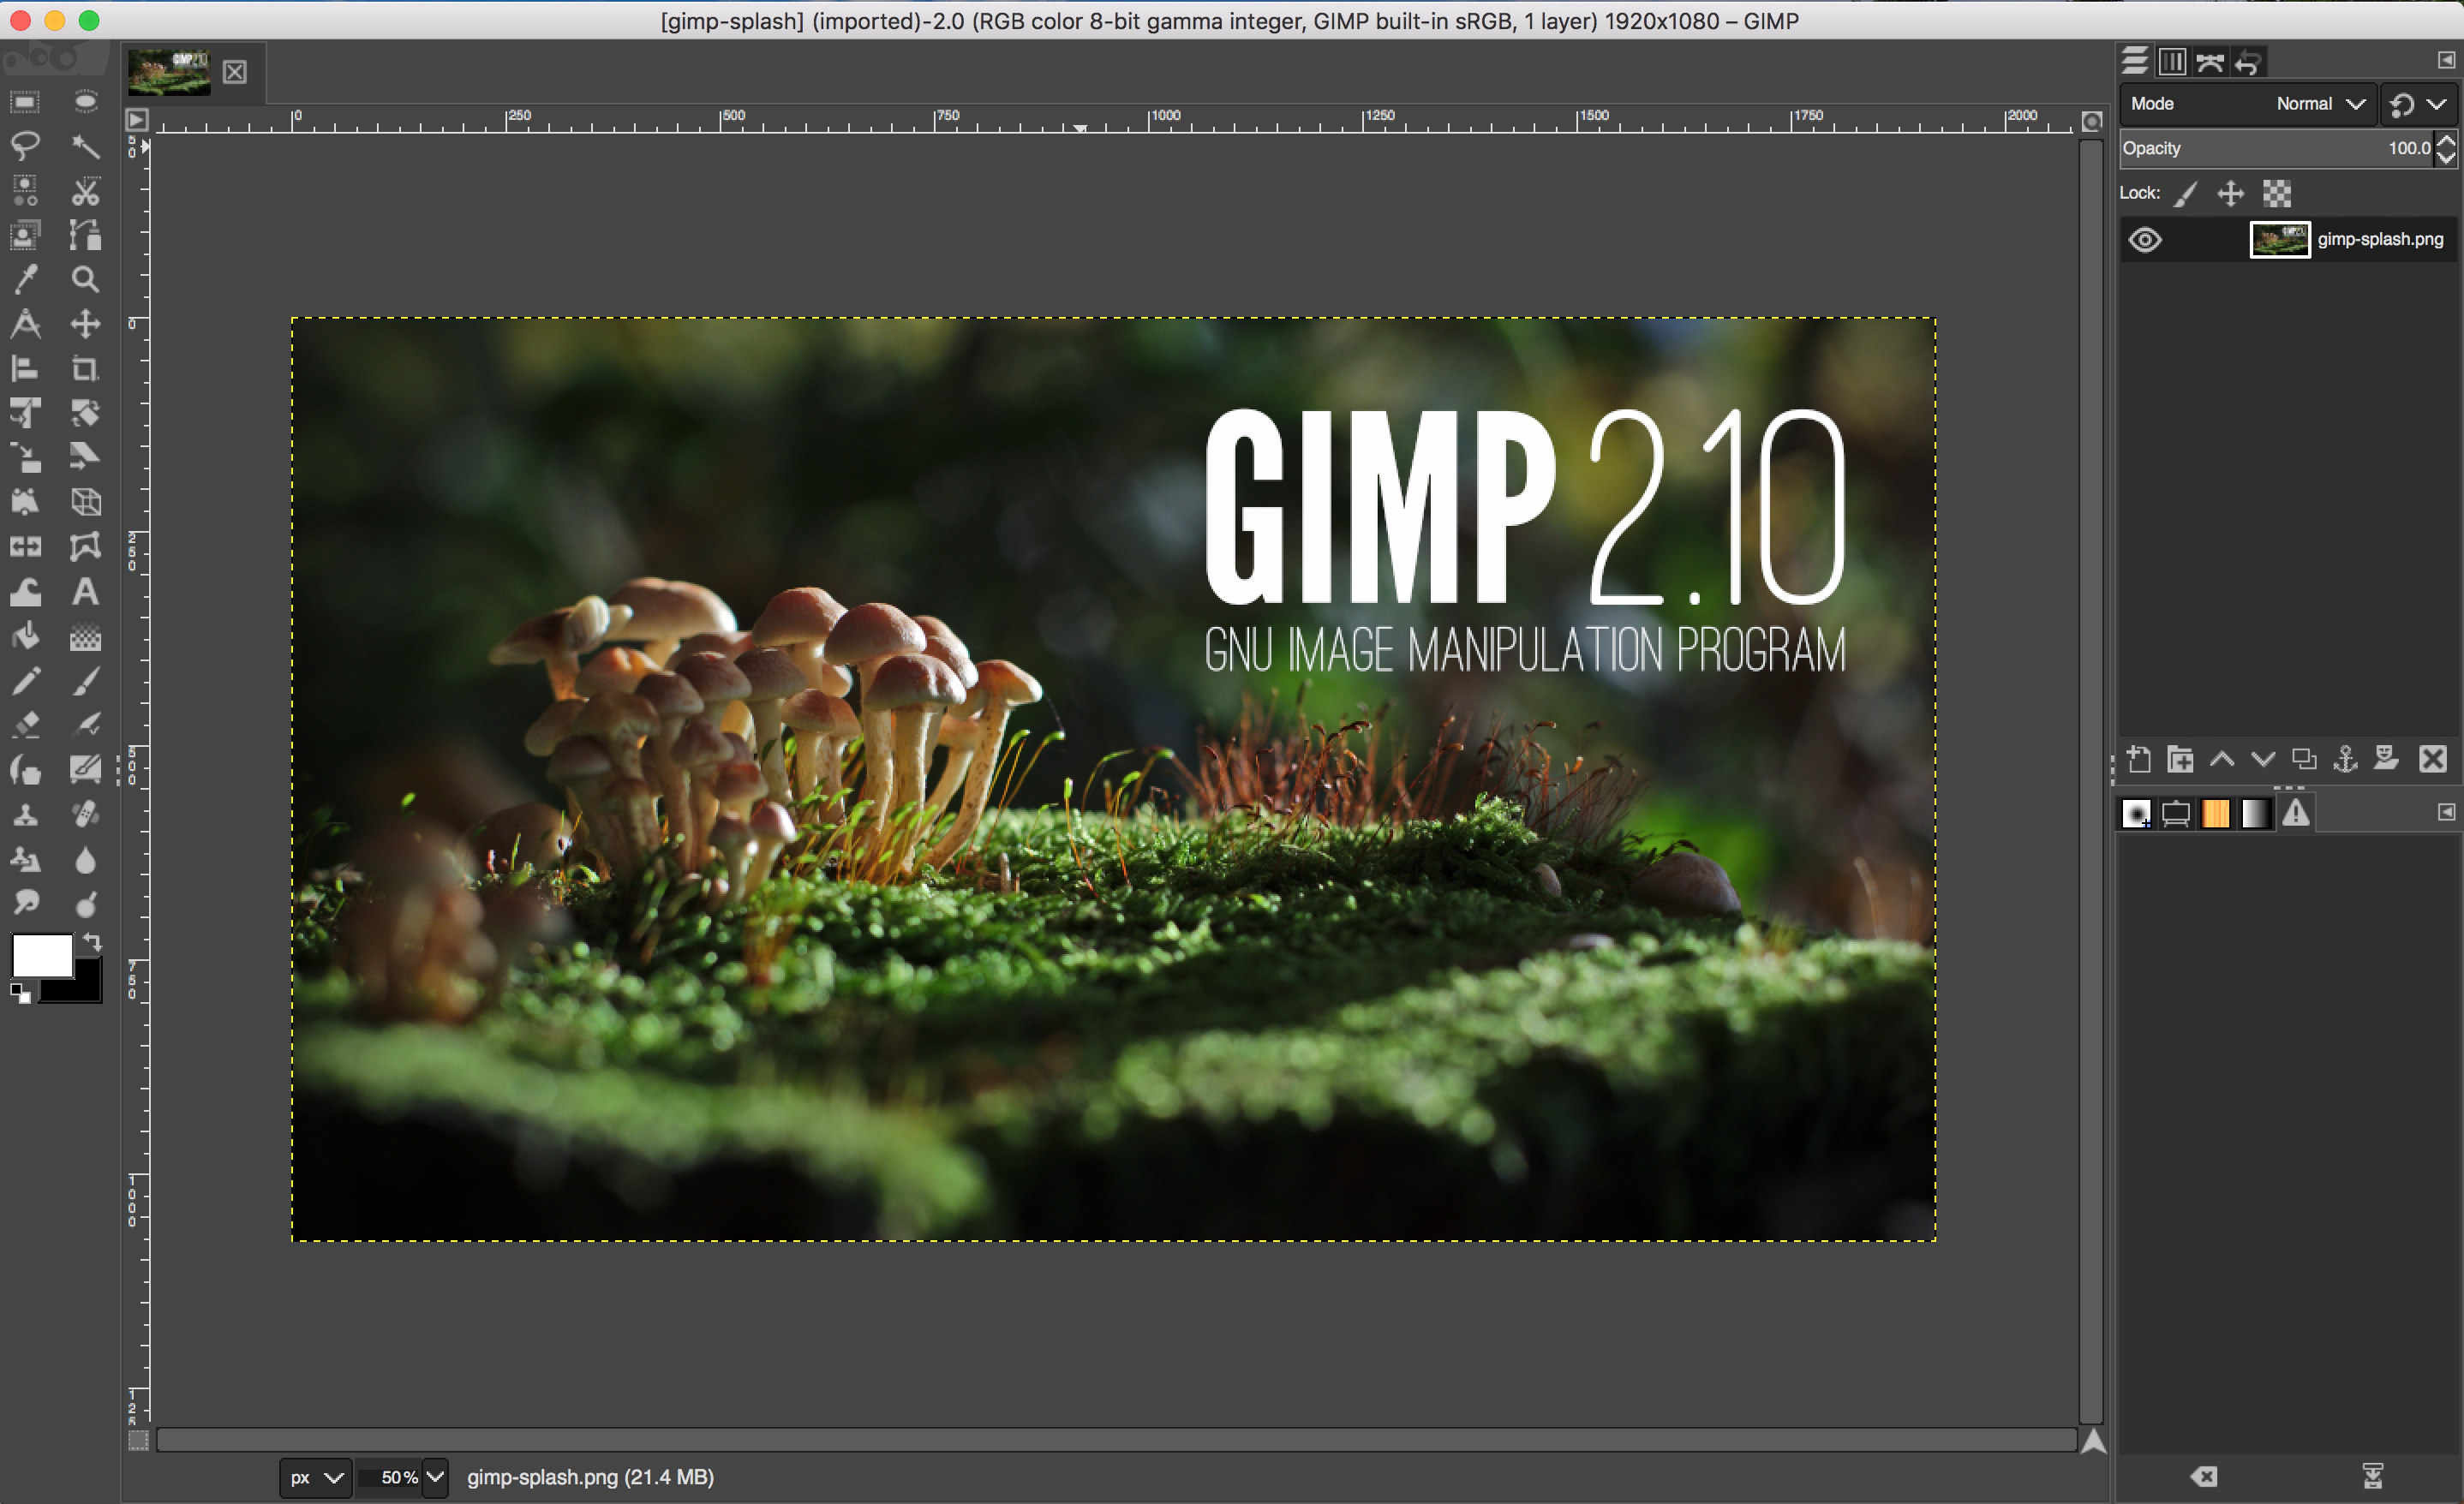 McGimp 2.10.0 Std